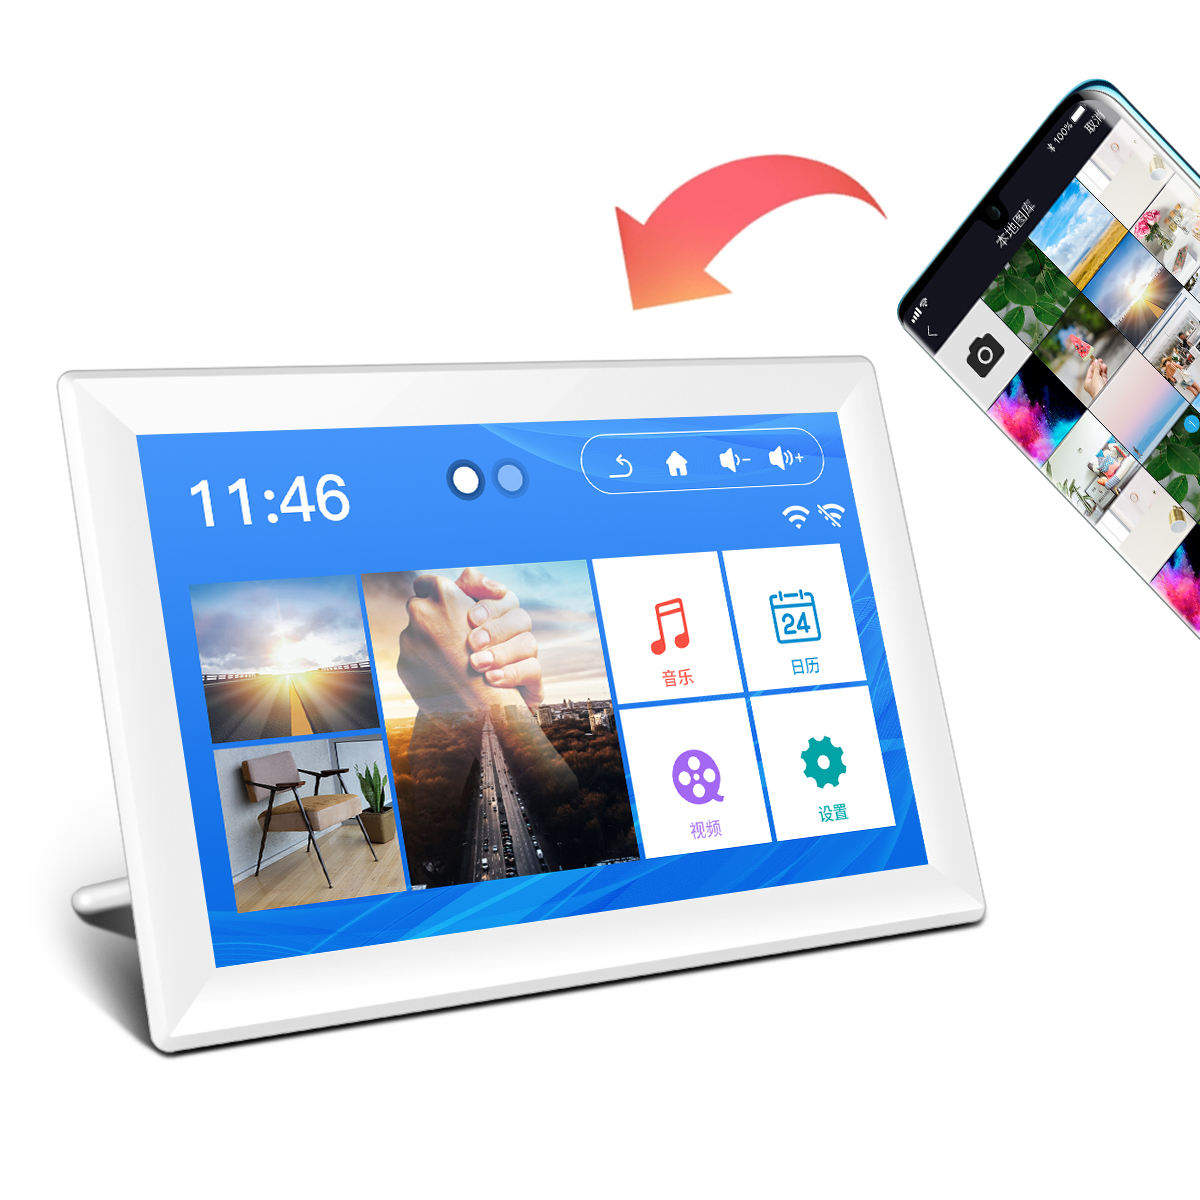 FHD Touchscreen IOS Android app Cloud Digital Smart video ad play Digital Photo Frame